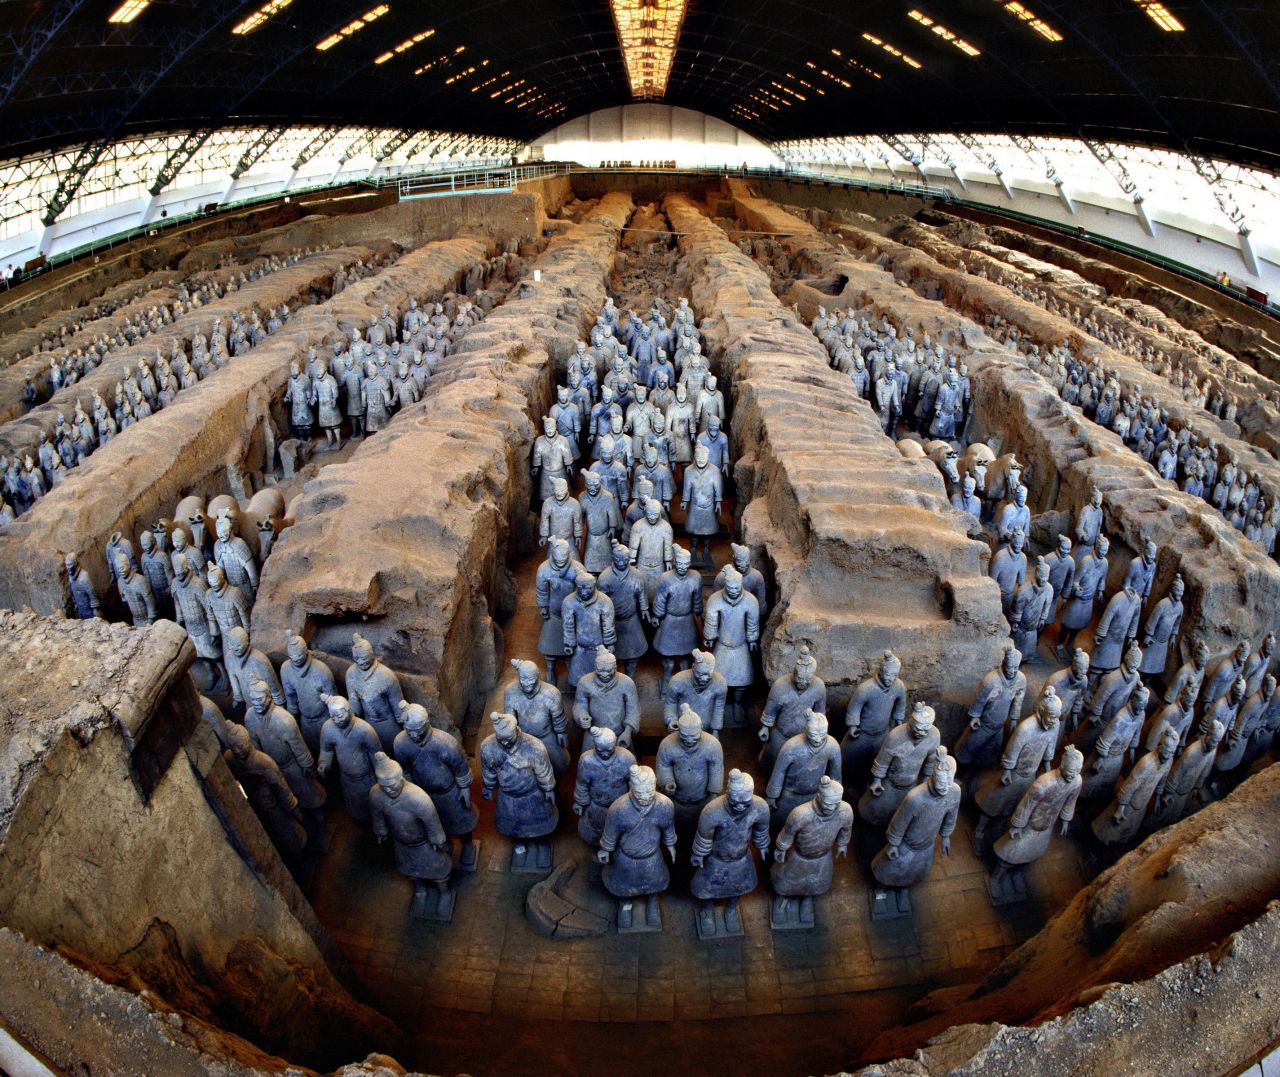 Damaged Terracotta Army statue to be repaired by Chinese experts